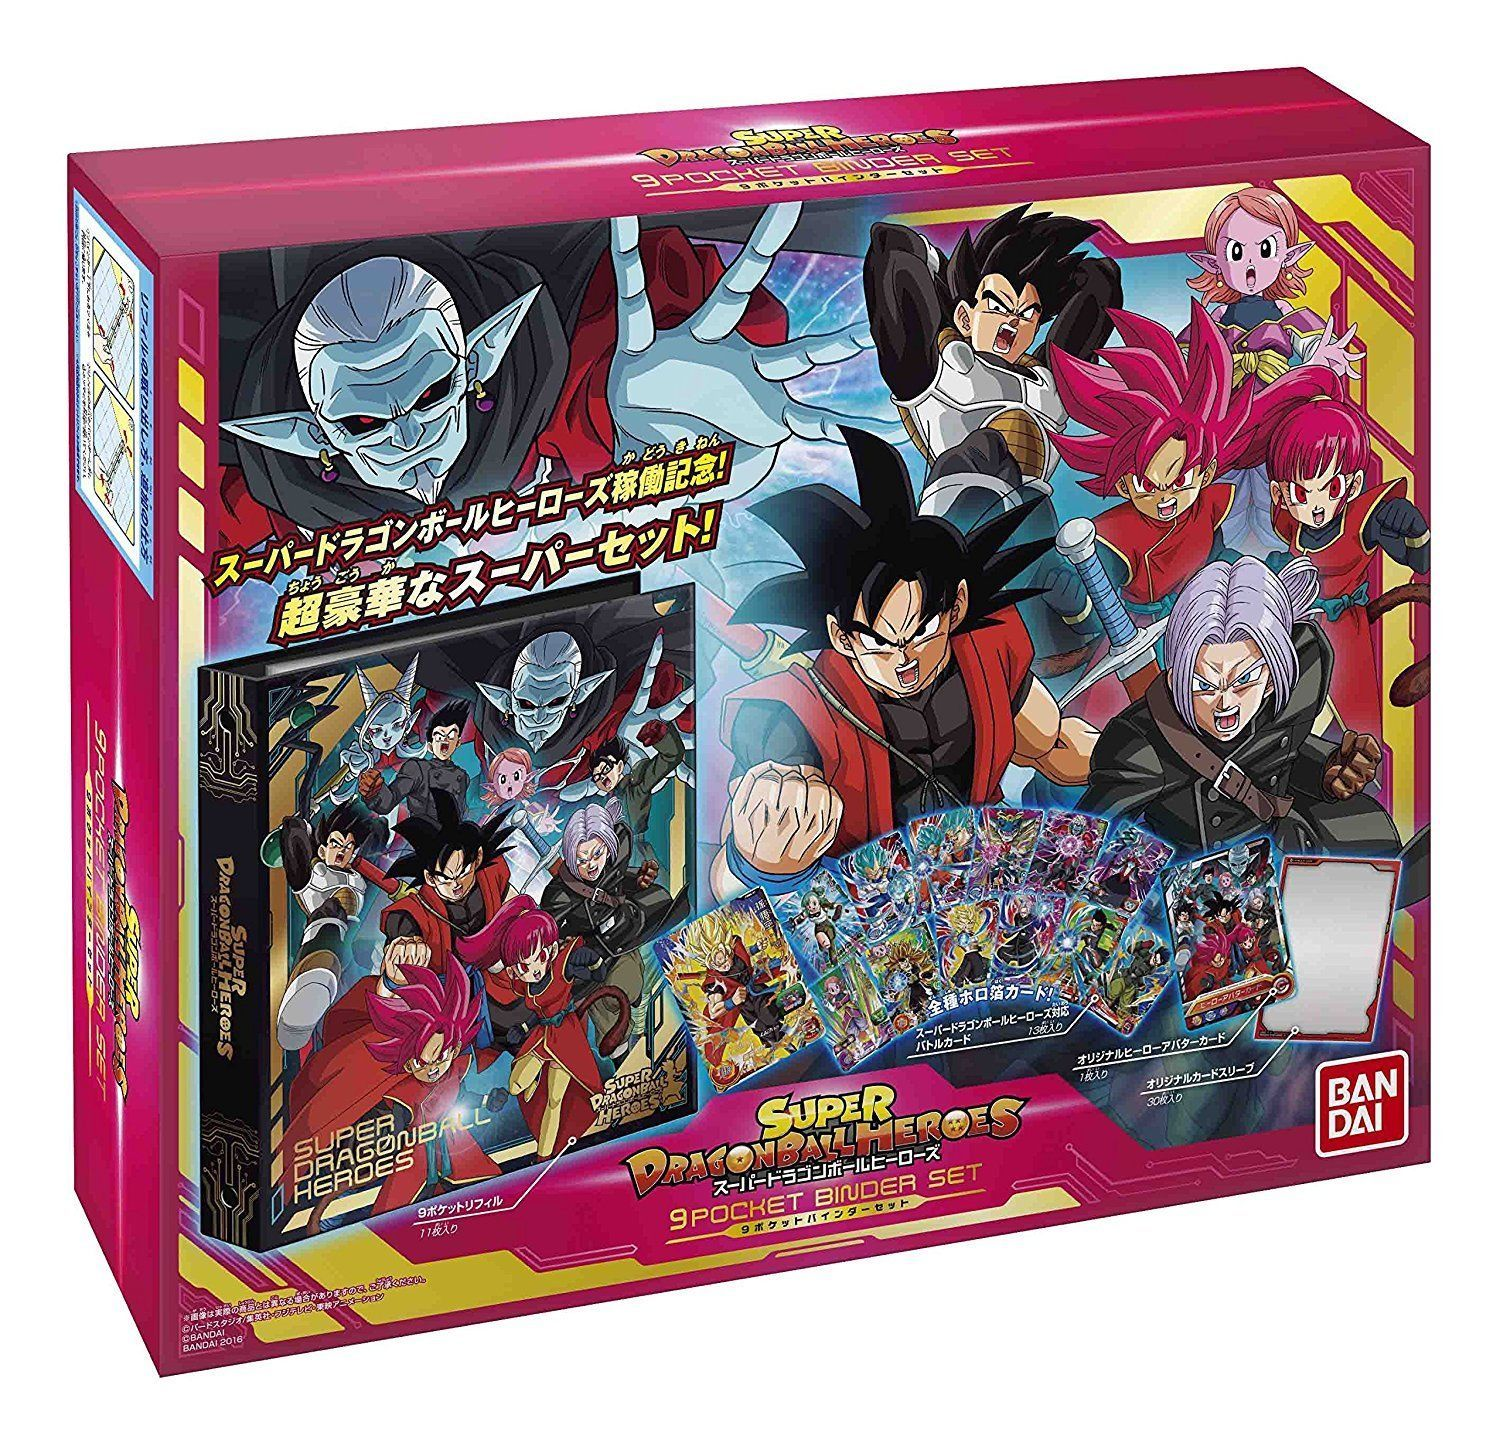 Details About BANDAI Super Dragon Ball Heroes Official 9